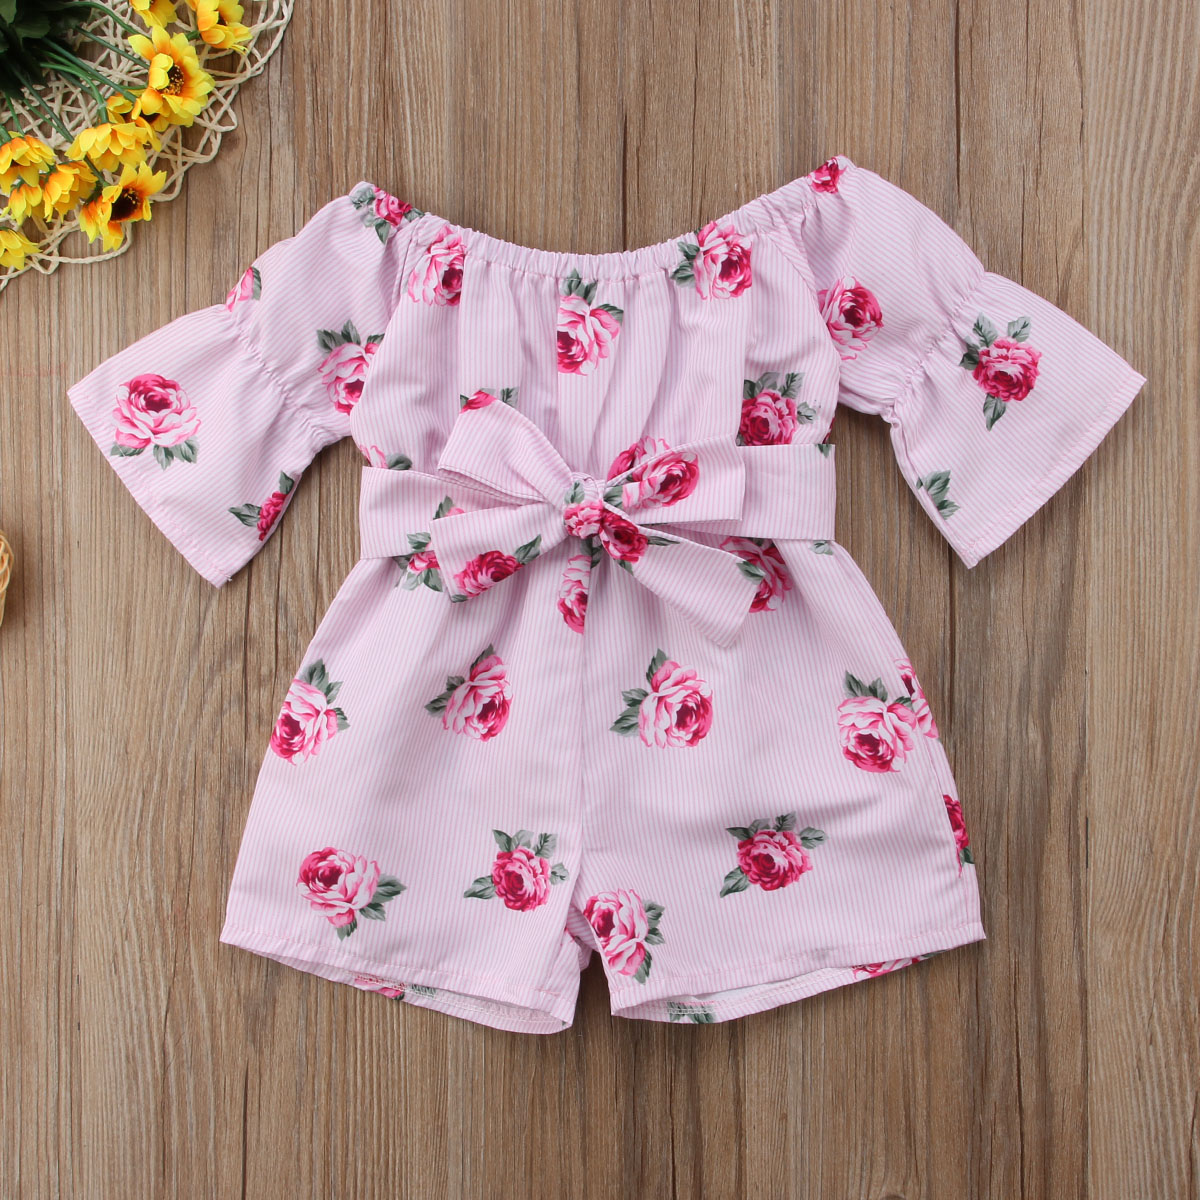 00f9890f4858 Pretty Pink Floral Off Shoulder Rompers Kids Baby Clothing Girl ...